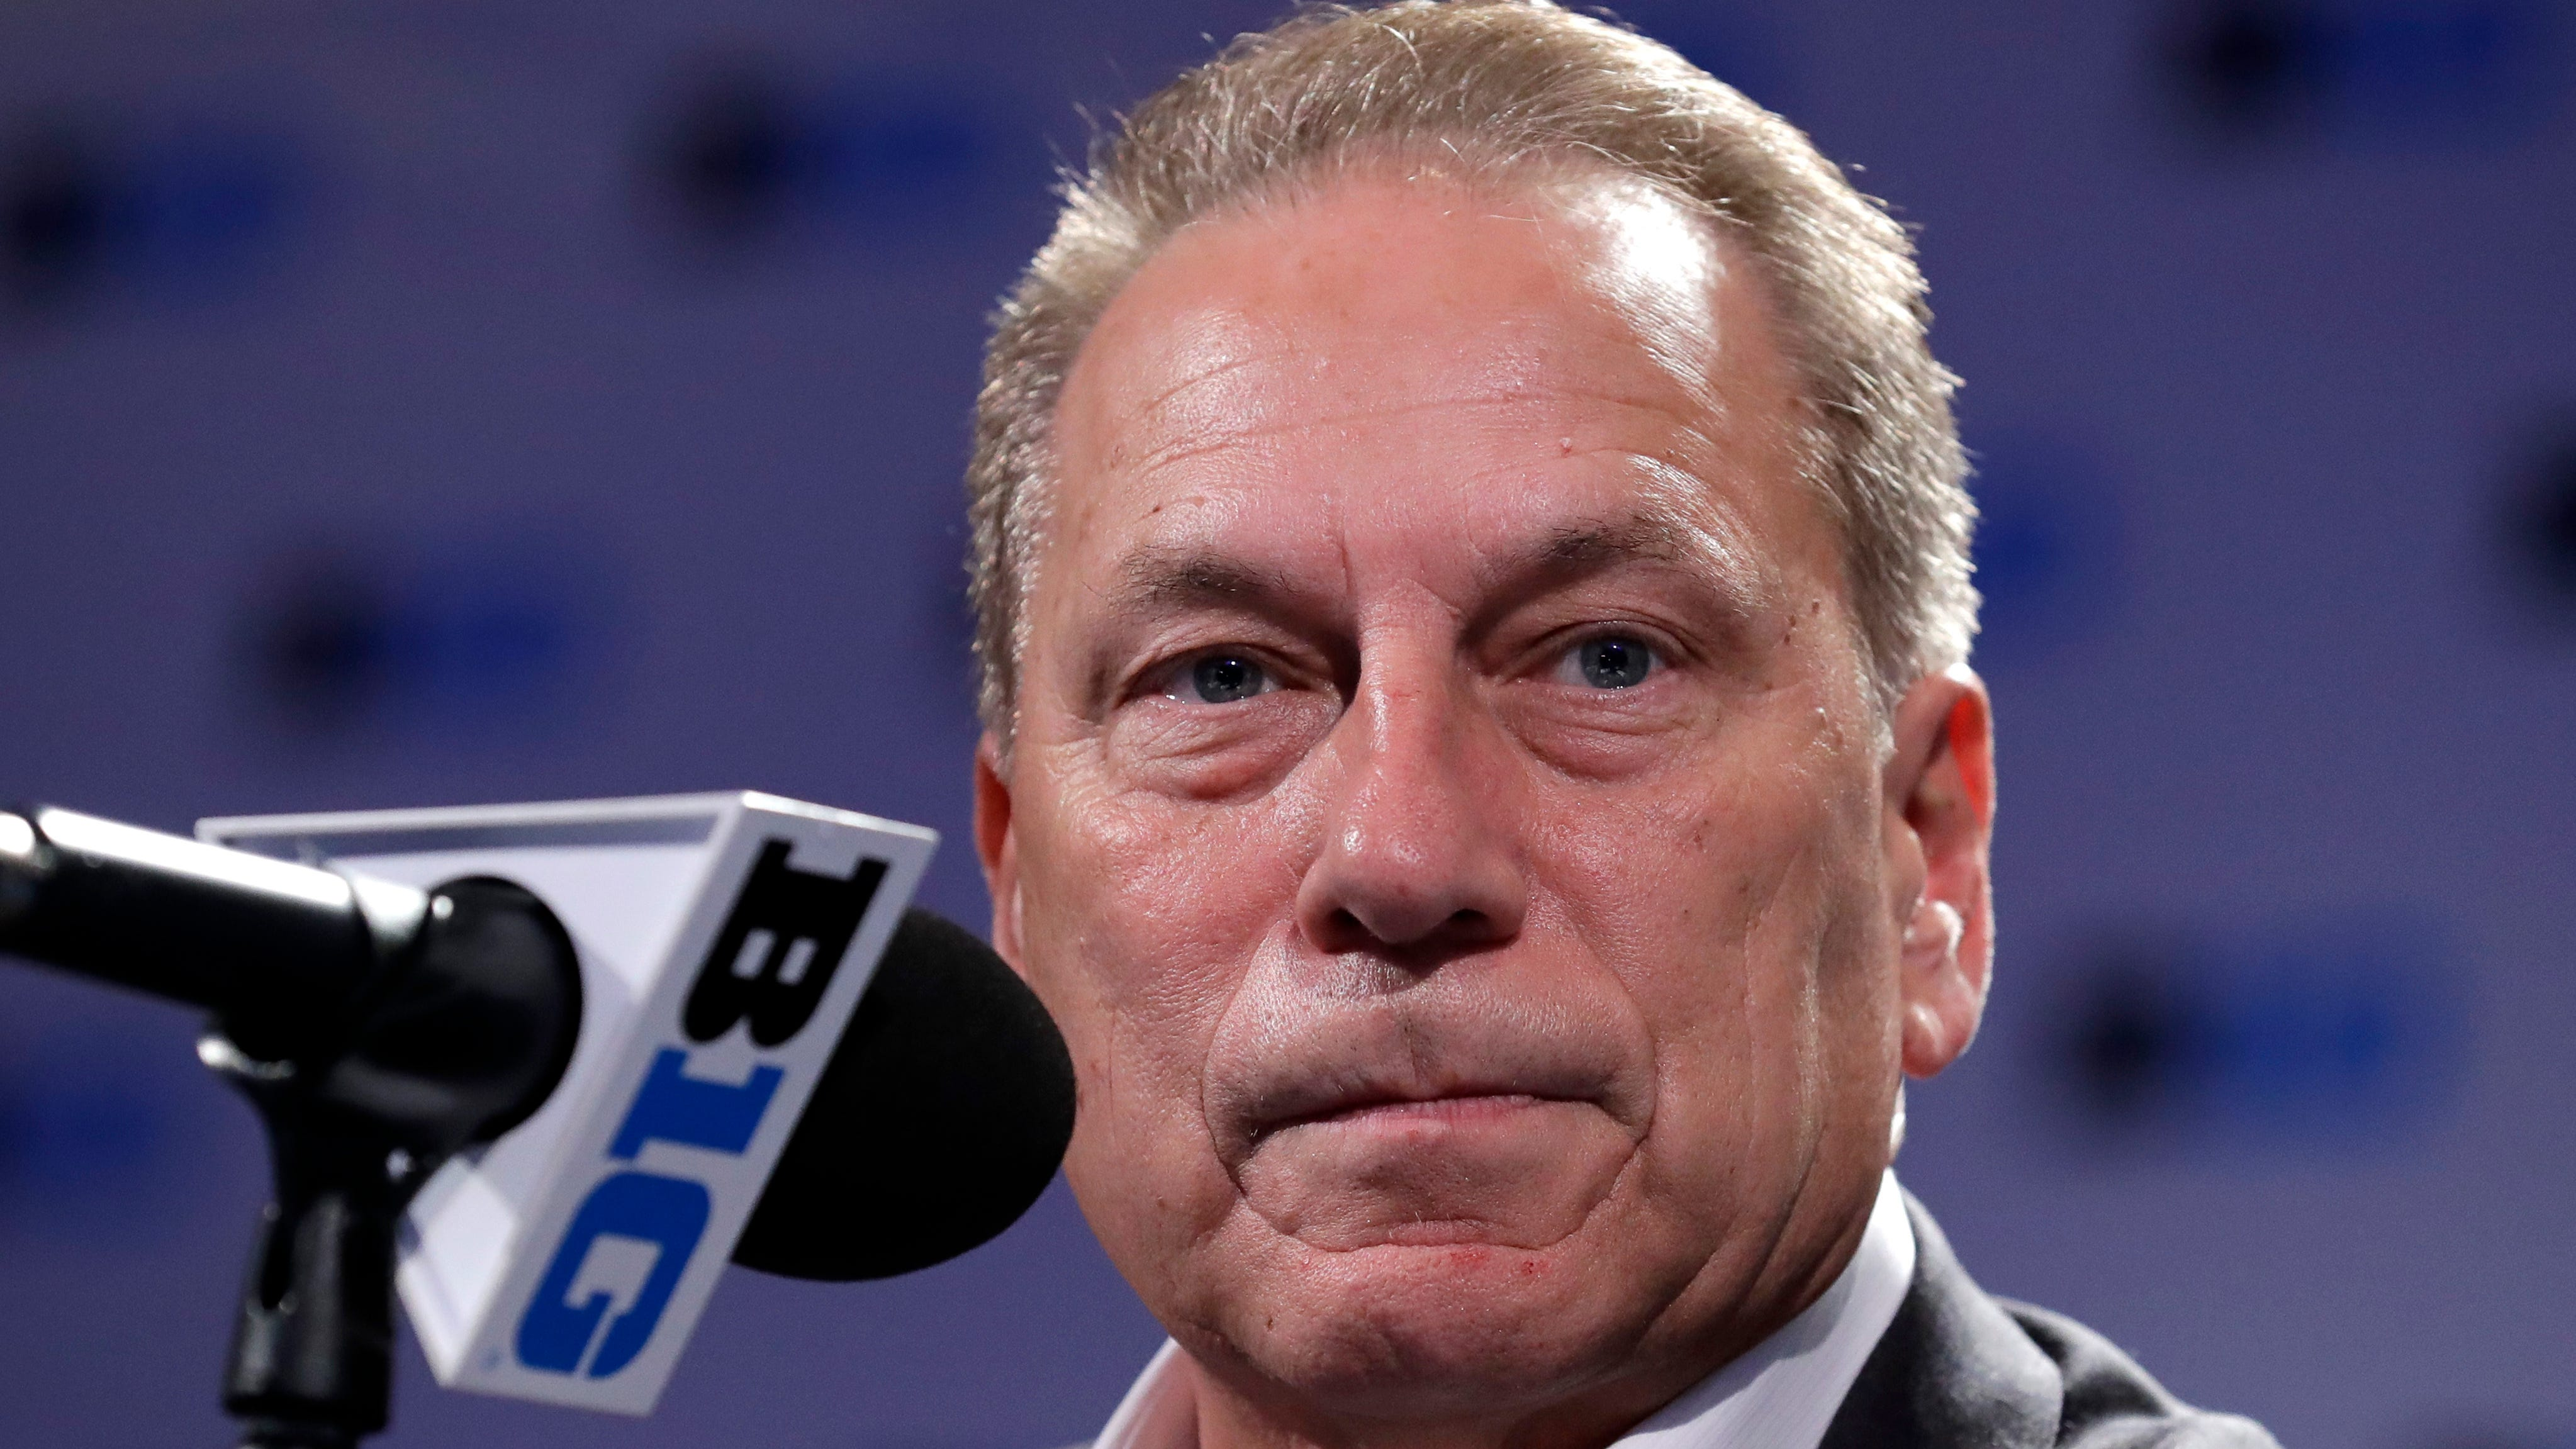 """Michigan State basetball coach Tom Izzo says """"if there was a time a player was found guilty of something, I promise you he will not be on this team."""""""